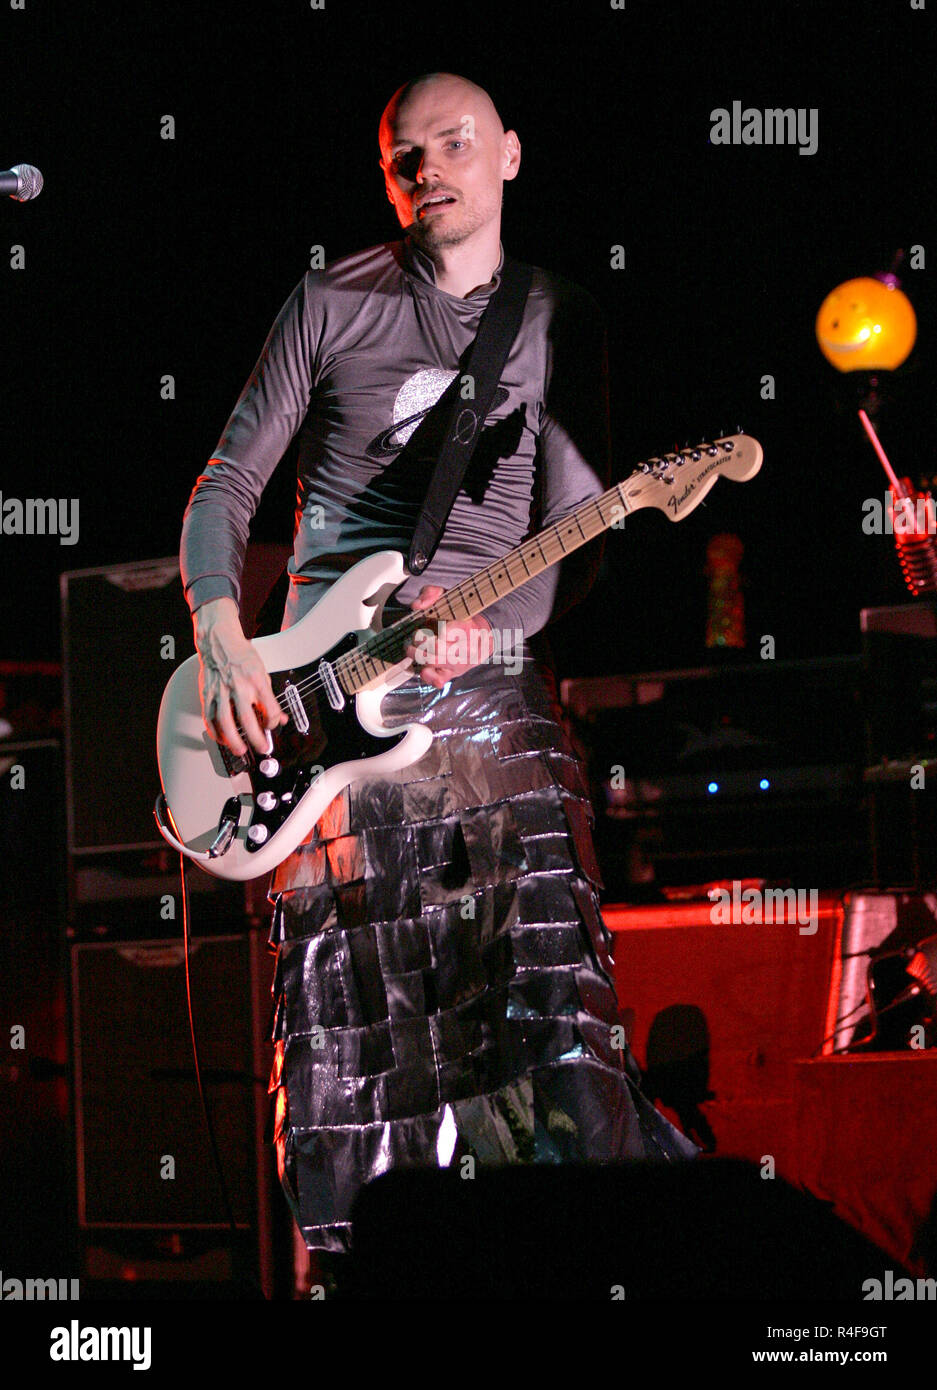 Billy Corgan with the Smashing Pumpkins performs in concert at the Mizner Park Amphitheatre in Boca Raton, Florida on August 21, 2008. - Stock Image